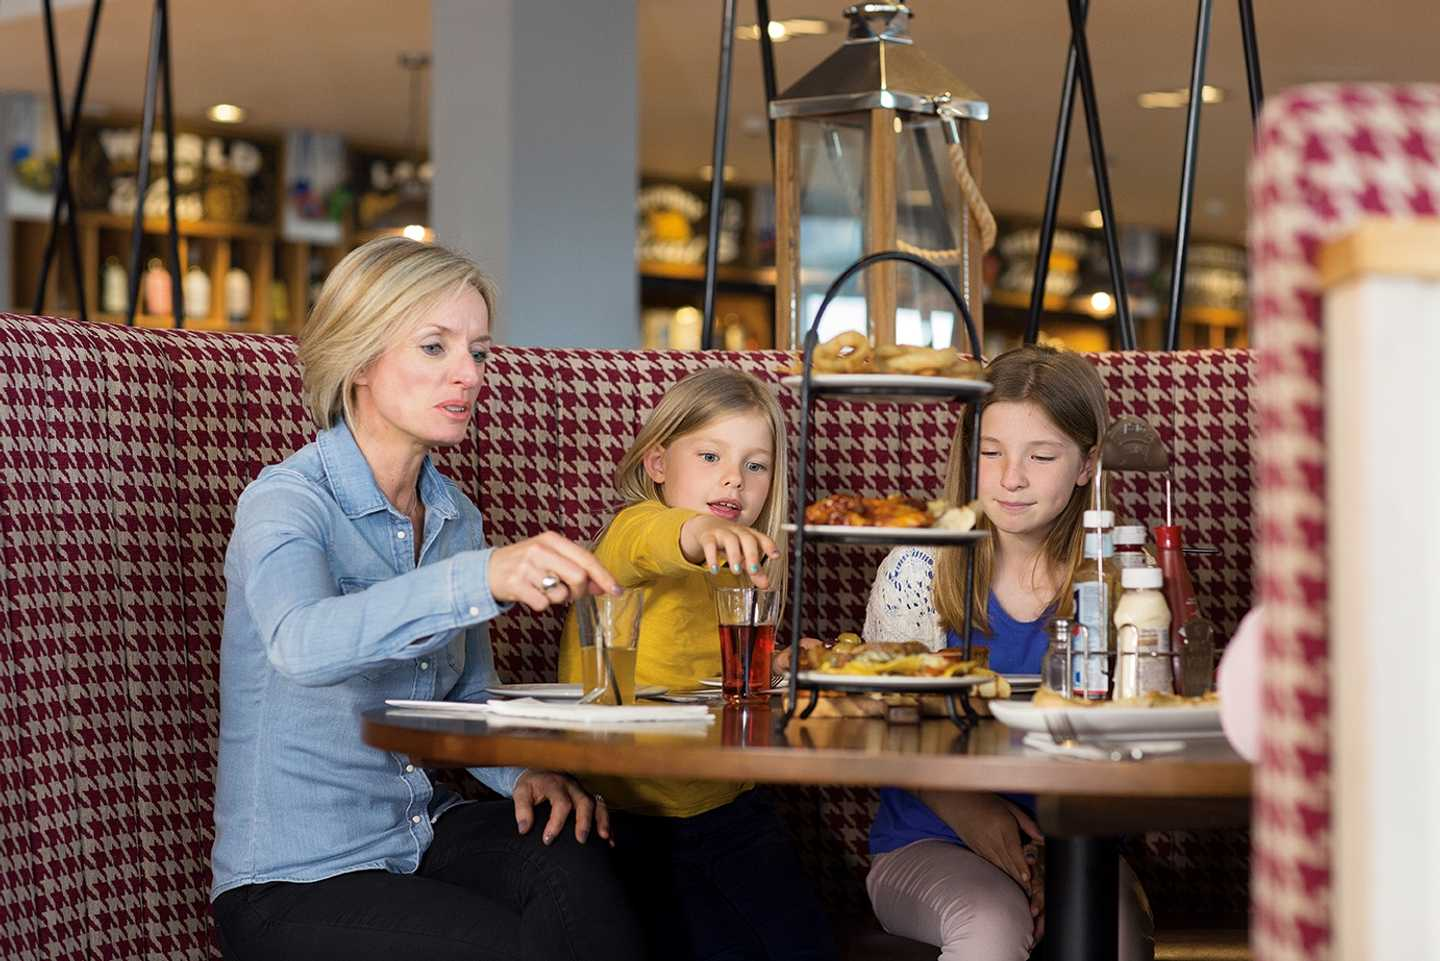 Guests eating in the Hawkwood restaurant